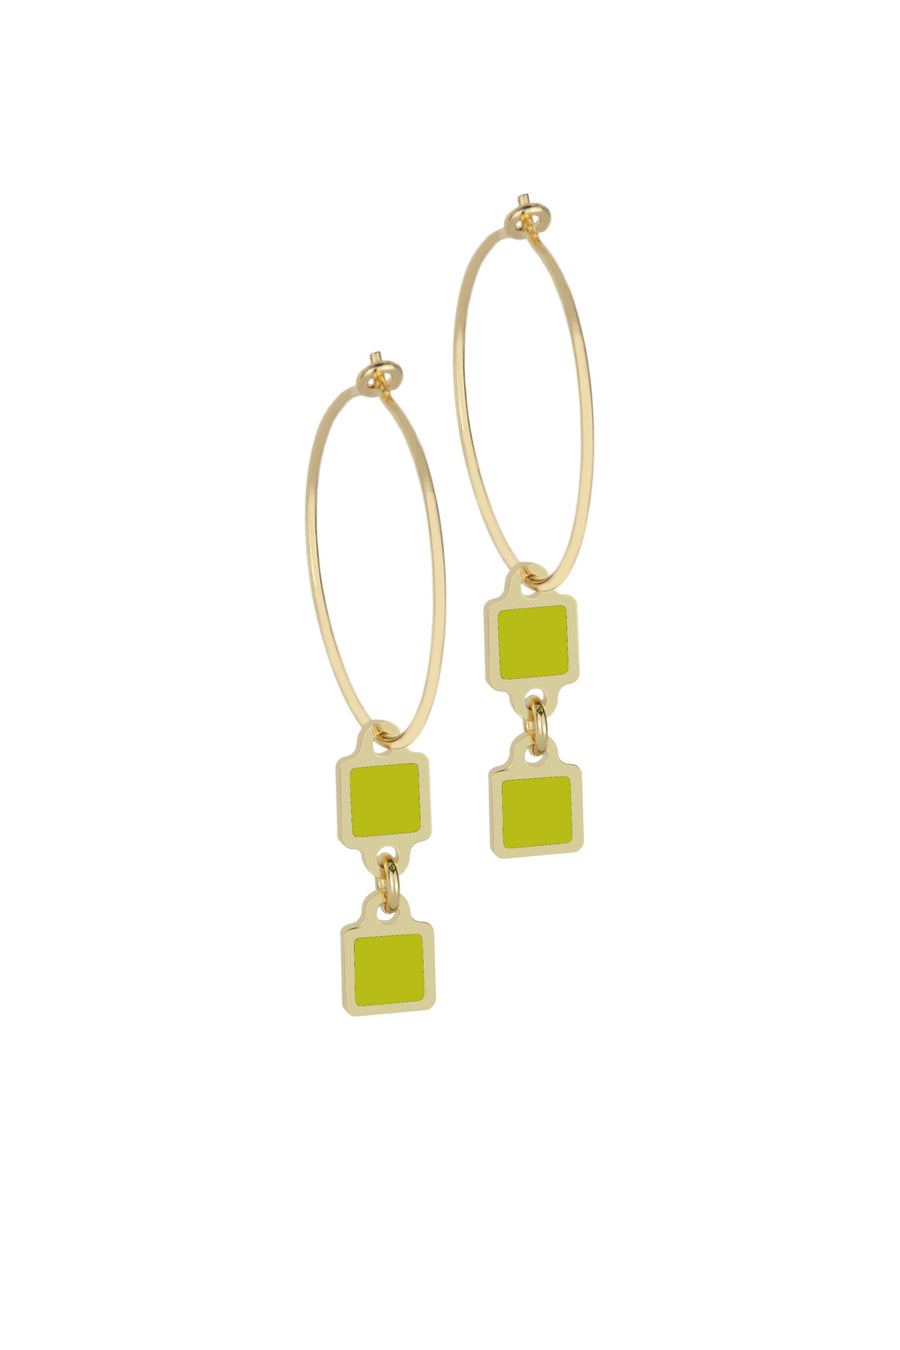 Francesca Bianchi - Square Pendant Hoop Earrings - Green